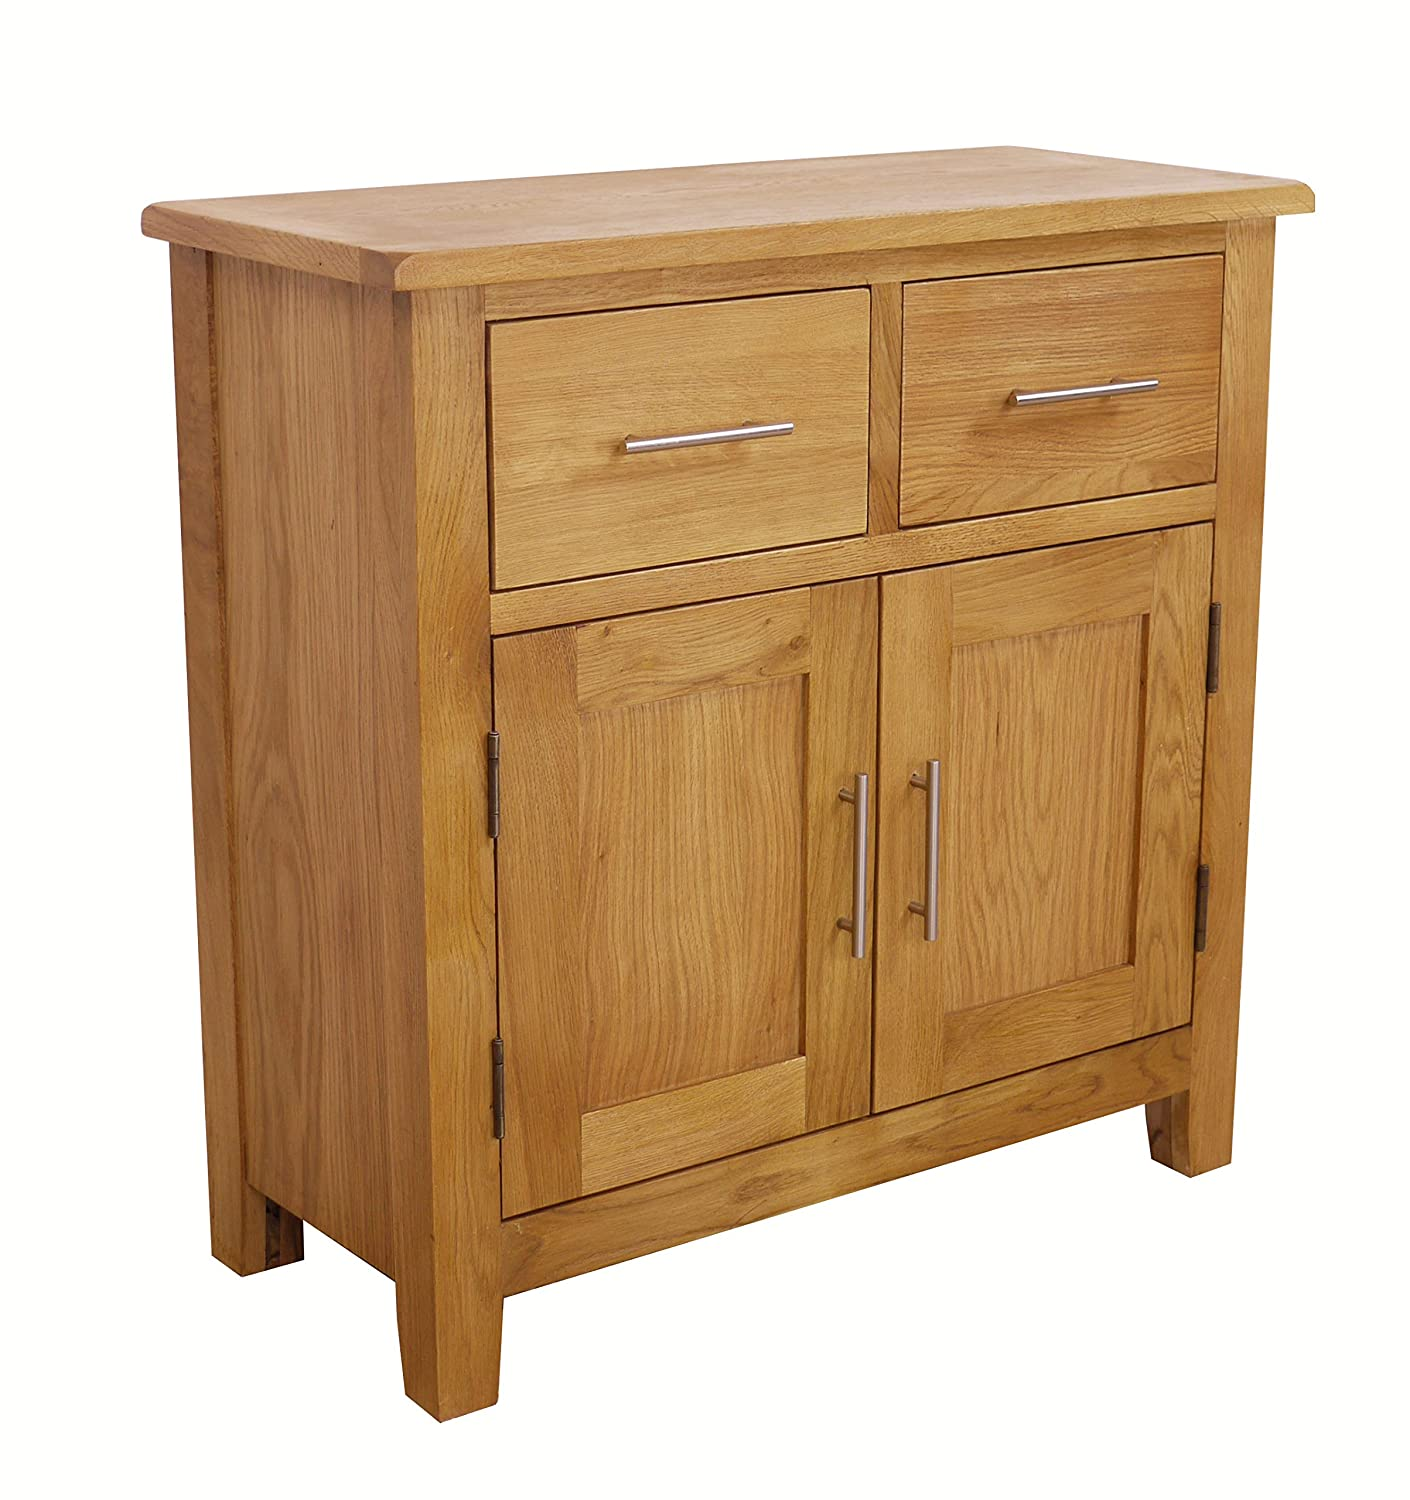 Nebraska Oak   Mini Sideboard / Small 2 Door 2 Drawer Storage Dresser Cupboard  Cabinet Unit Part 78